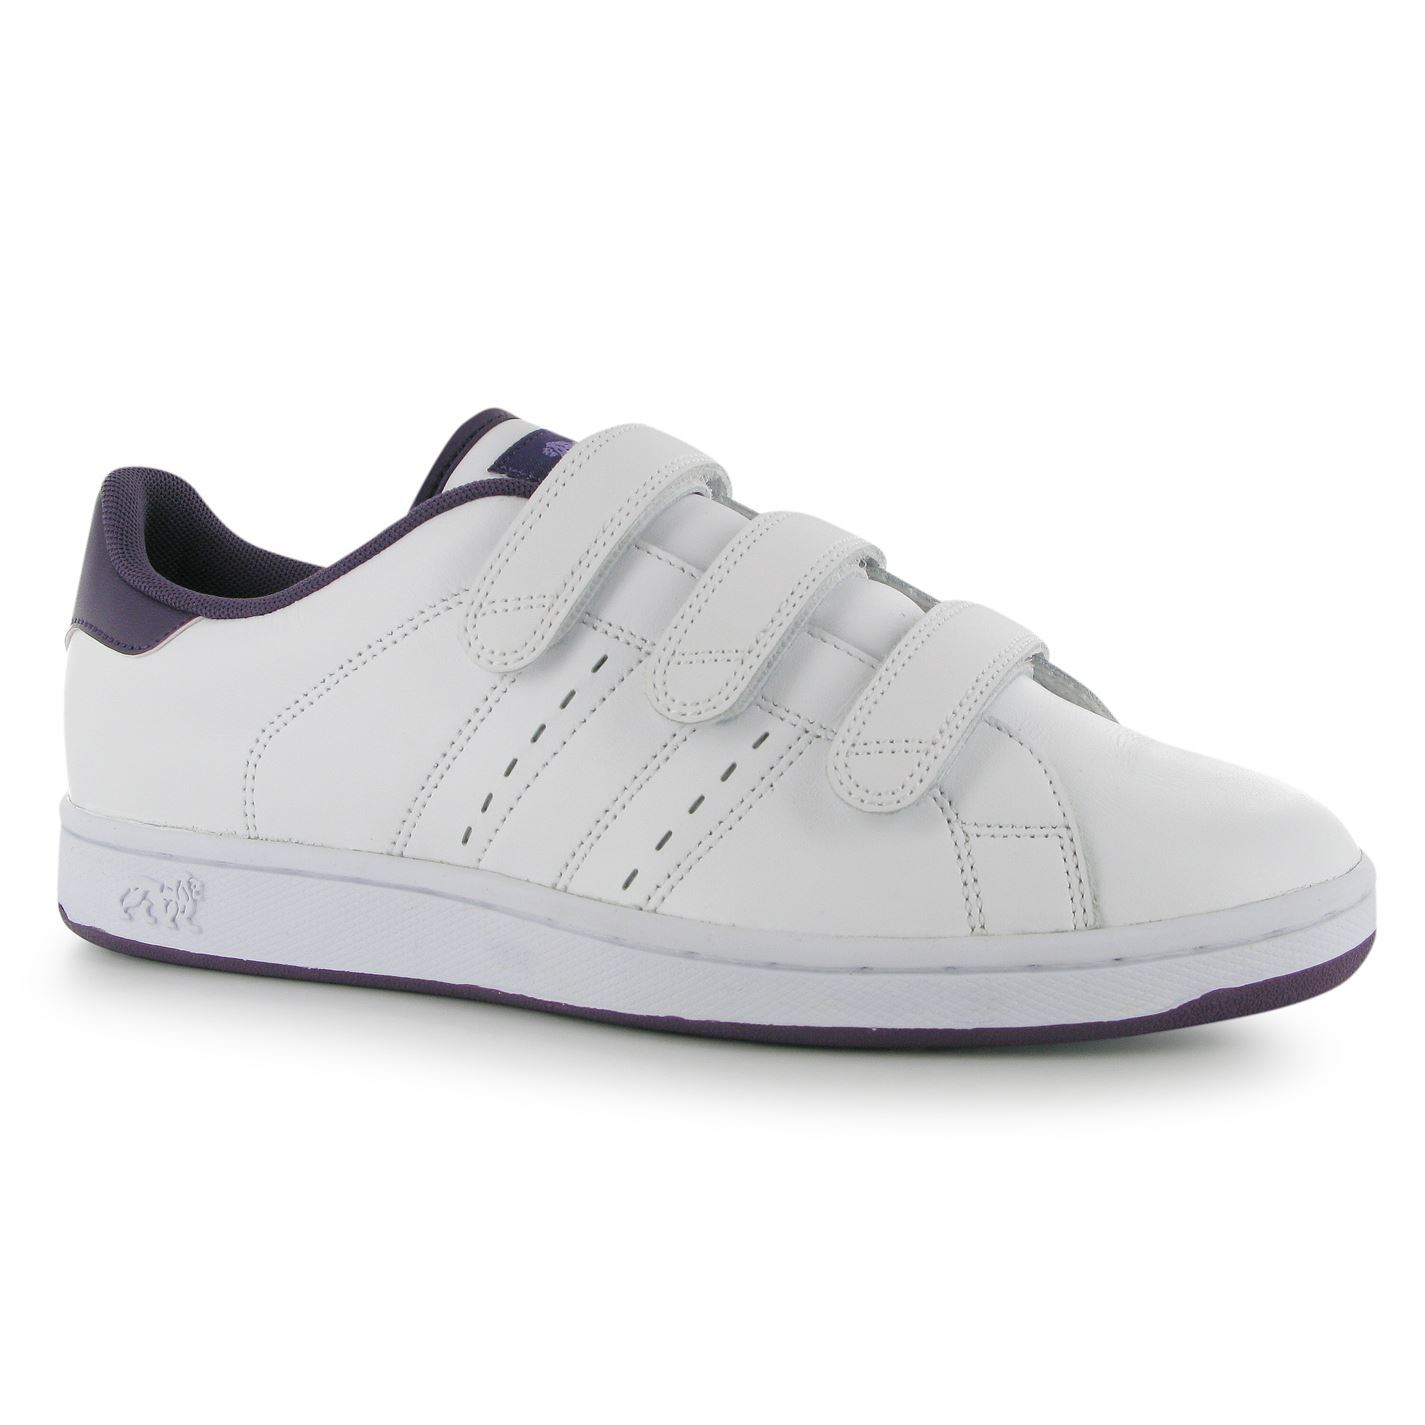 Lonsdale Leyton Hook & Loop Trainers Womens White/Purple Fashion Sneakers Shoes